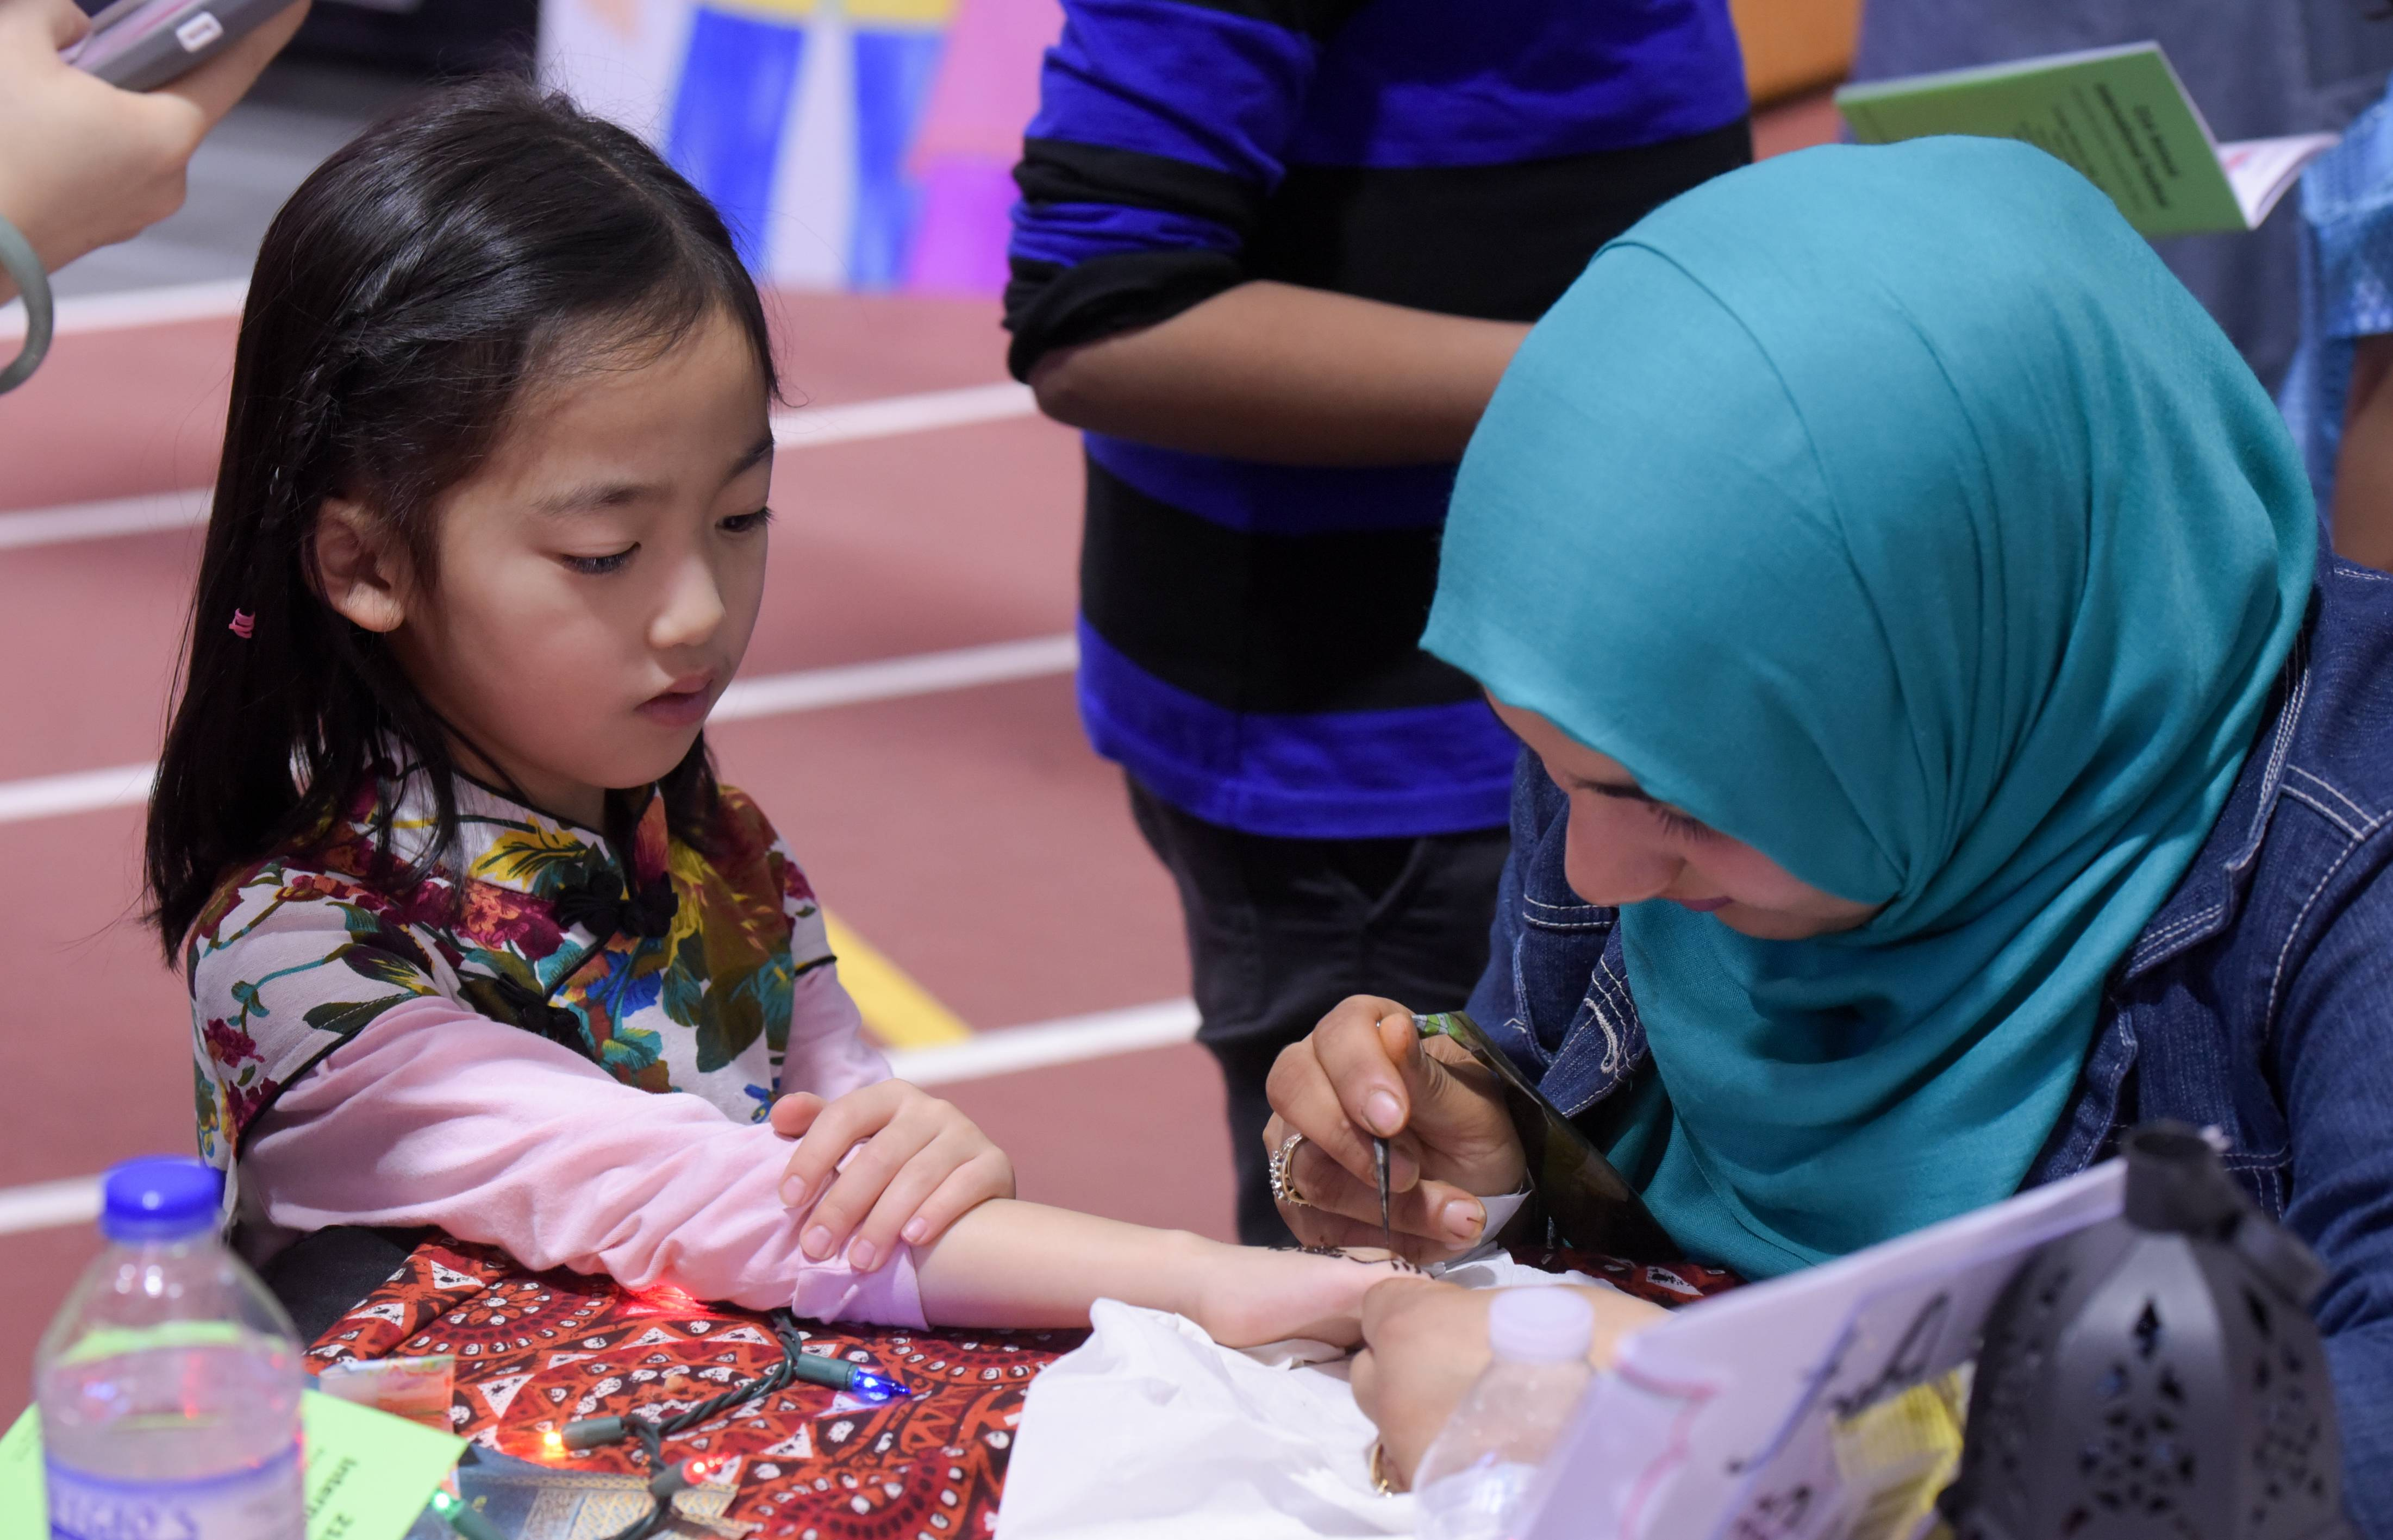 Booths at the International Festival introduce religious and ethnic traditions with hand-on activities such as henna art.